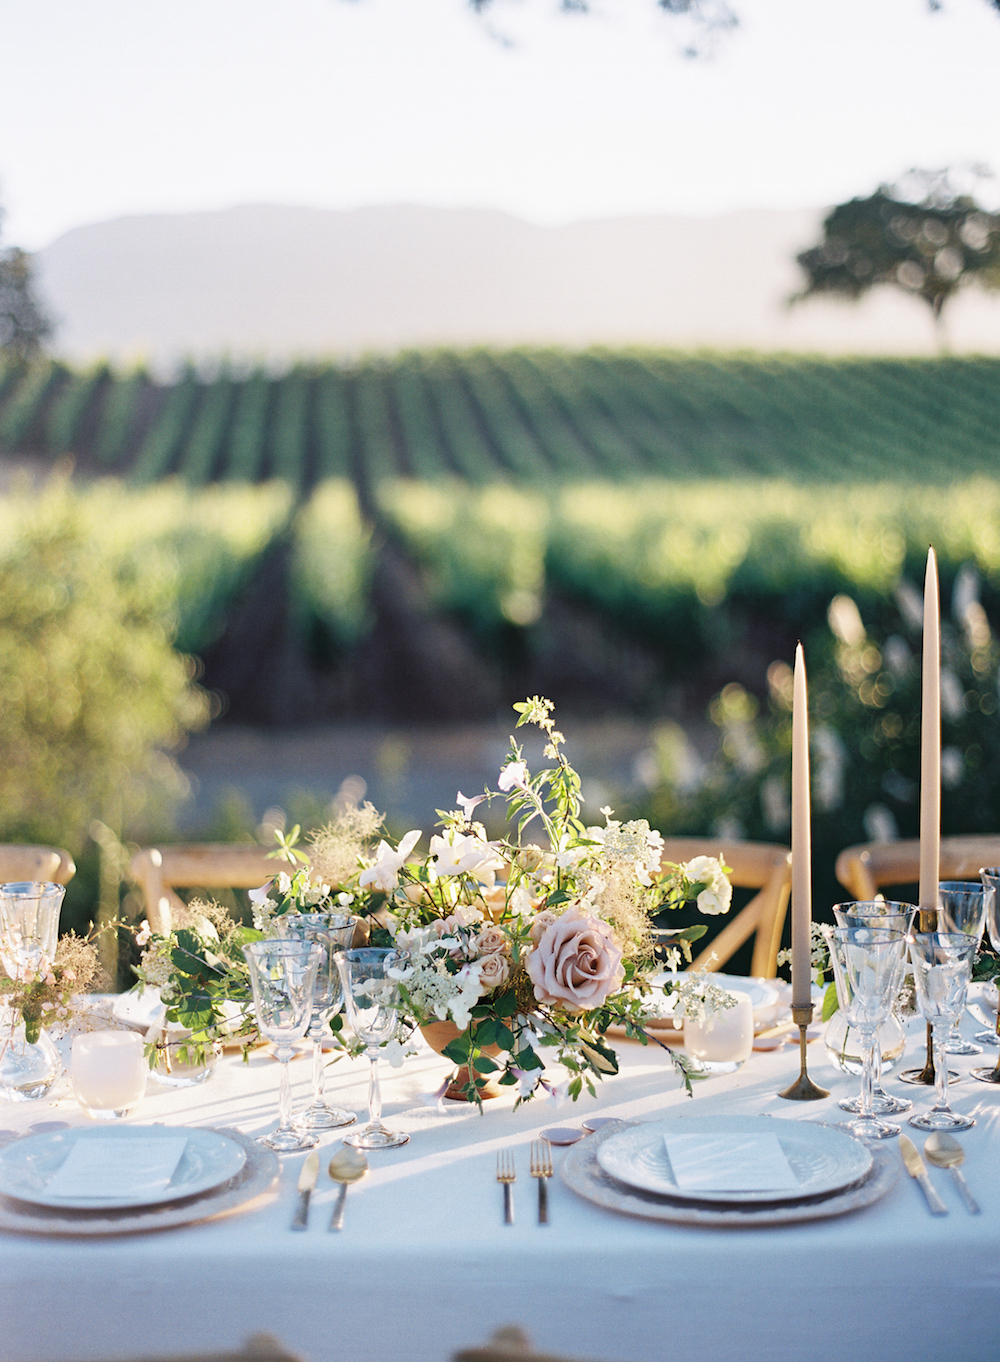 Golden Napa Valley light crawling across a magical al fresco tablescape set in a vineyard.  Photo by Eric Kelley.  Event Design by Jenny Schneider Events and Laurie Arons Special Events.